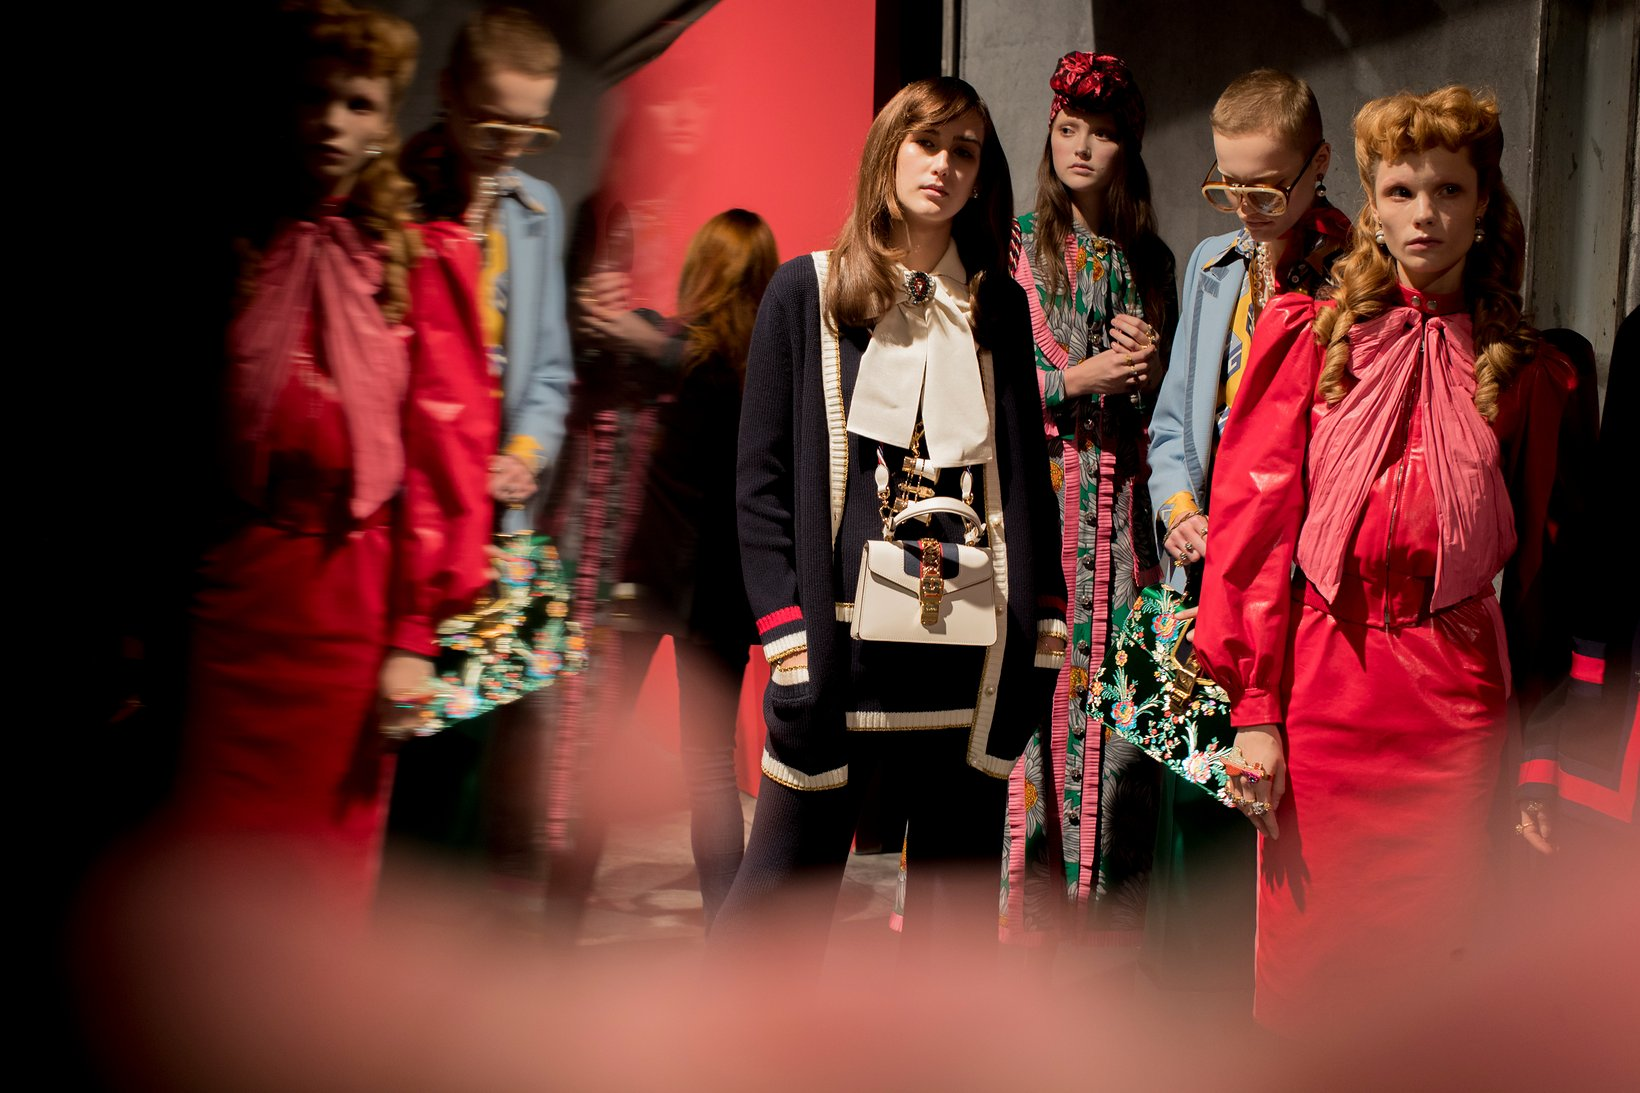 gucci backstage, gucci-milan fashion week-2016_-gucci-backstage-kevin-tachman